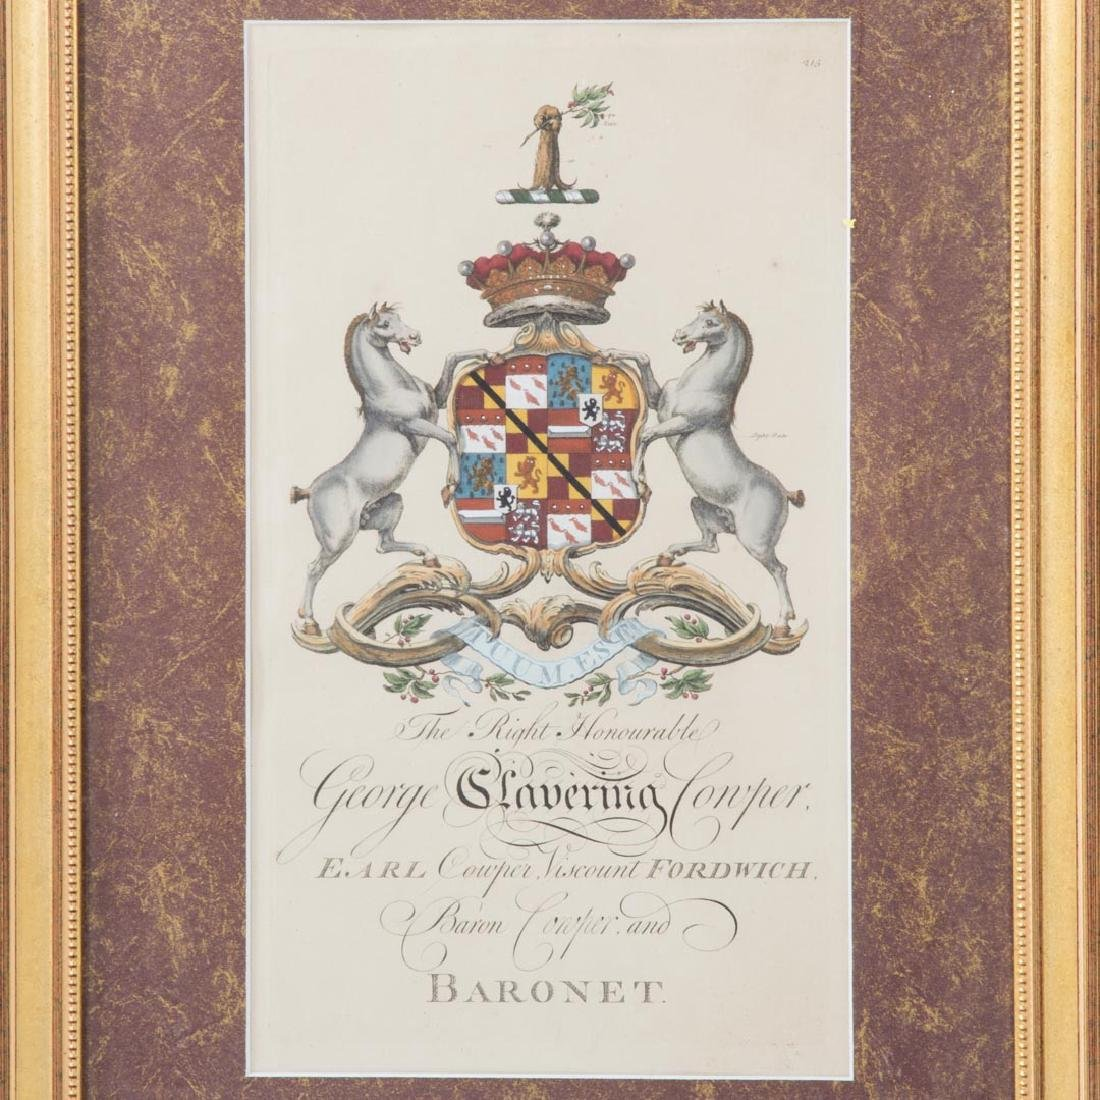 Joseph Edmondson. Baron Genealogy, 8 engravings - 3